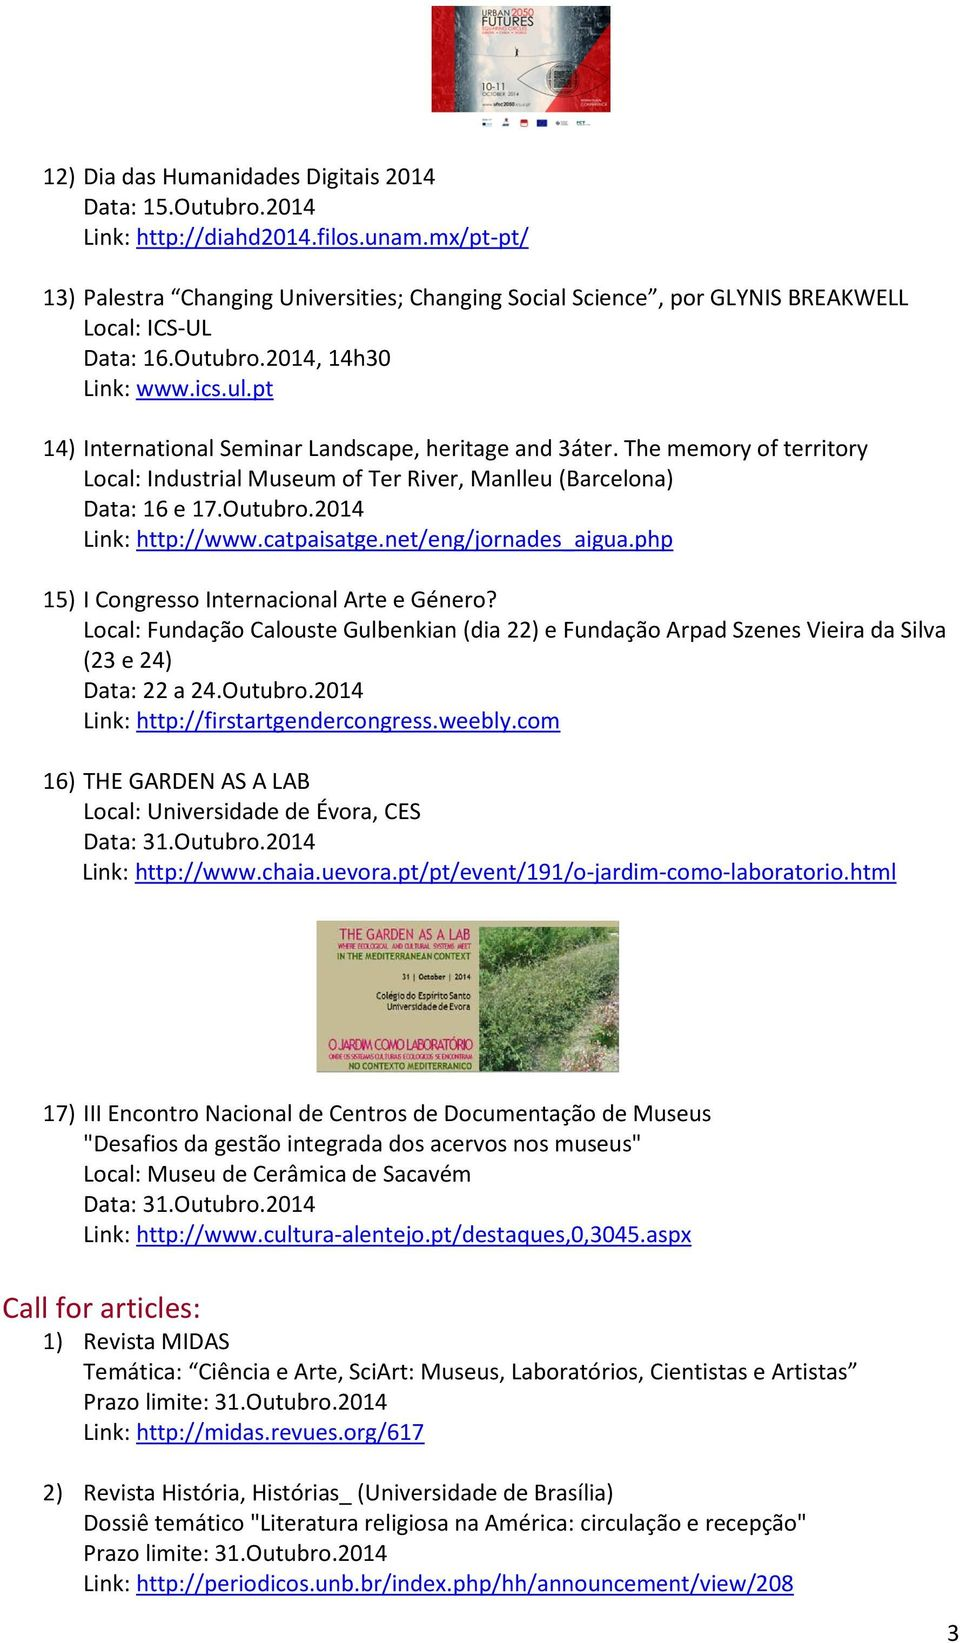 pt 14) International Seminar Landscape, heritage and 3áter. The memory of territory Local: Industrial Museum of Ter River, Manlleu (Barcelona) Data: 16 e 17.Outubro.2014 Link: http://www.catpaisatge.